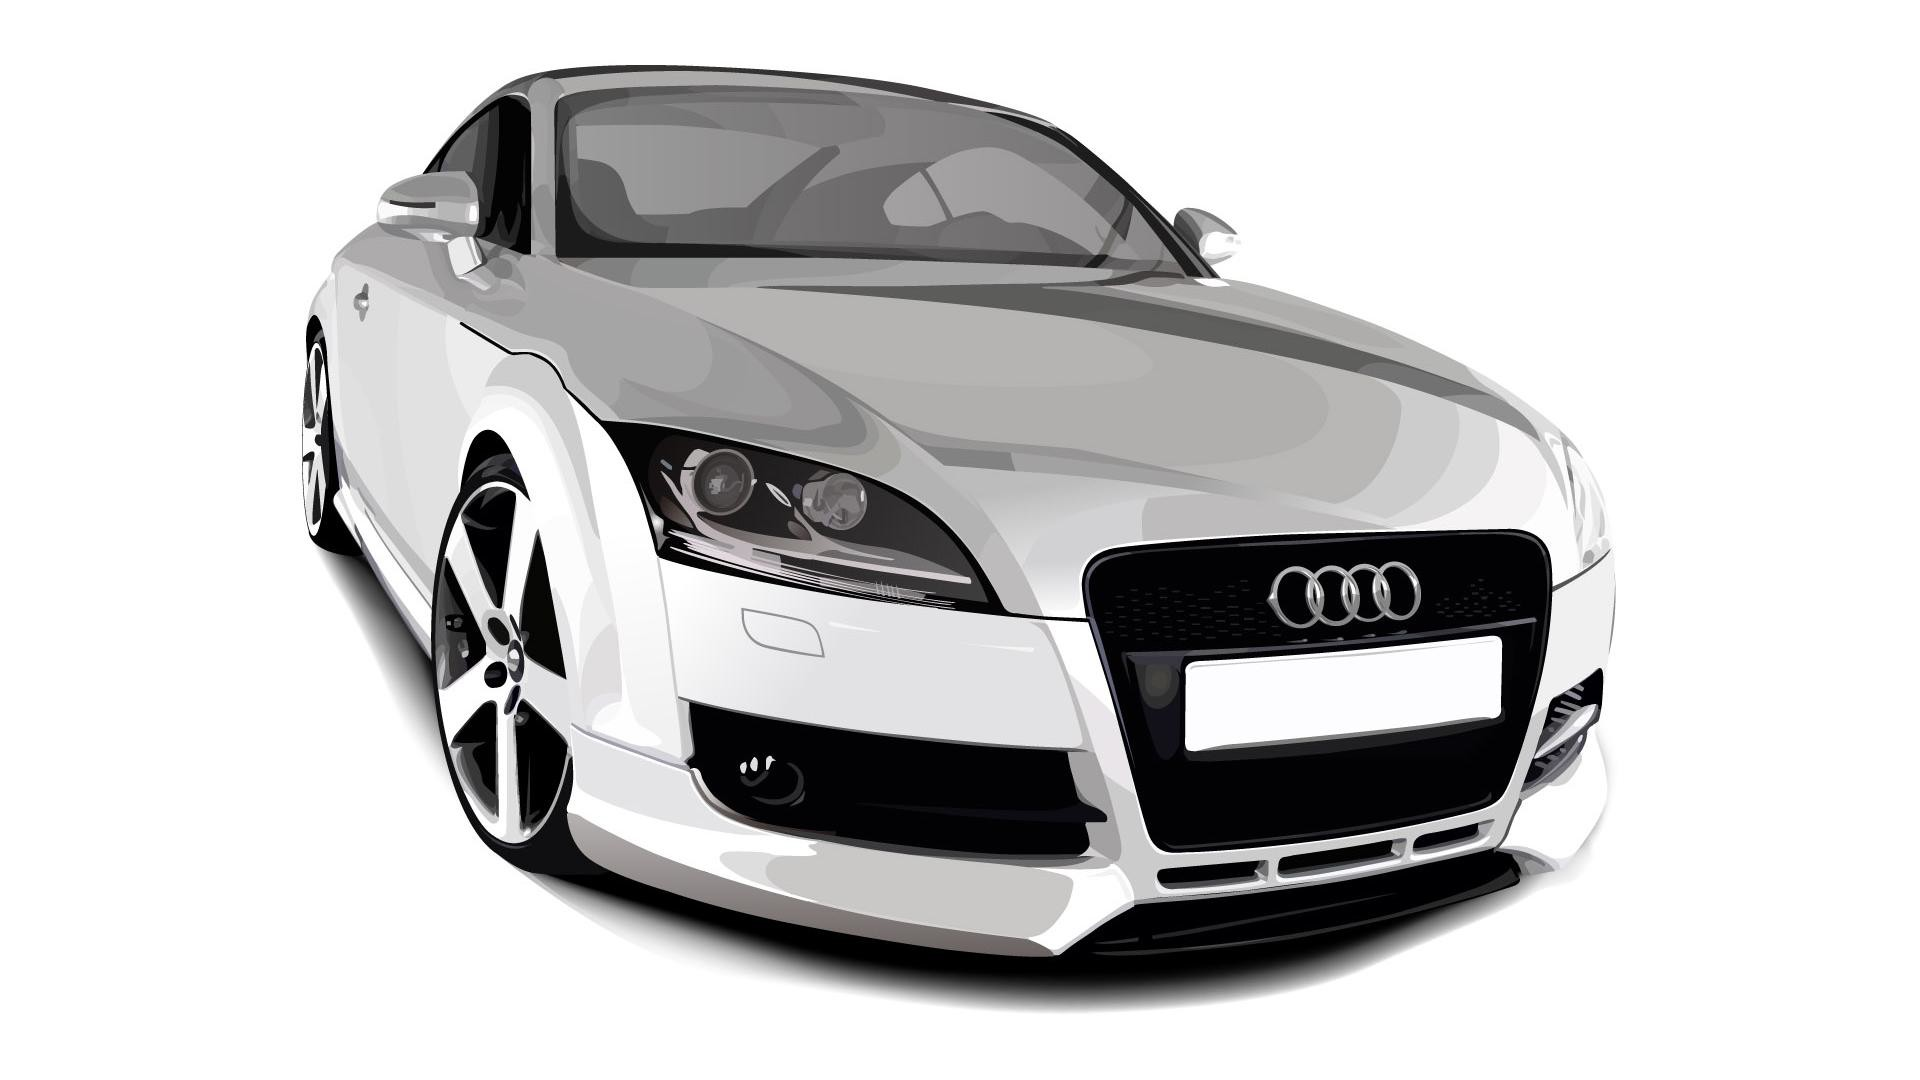 1920x1080  Hd White audi car backgrounds wide  wallpapers:1280x800,1440x900,1680x1050 - hd